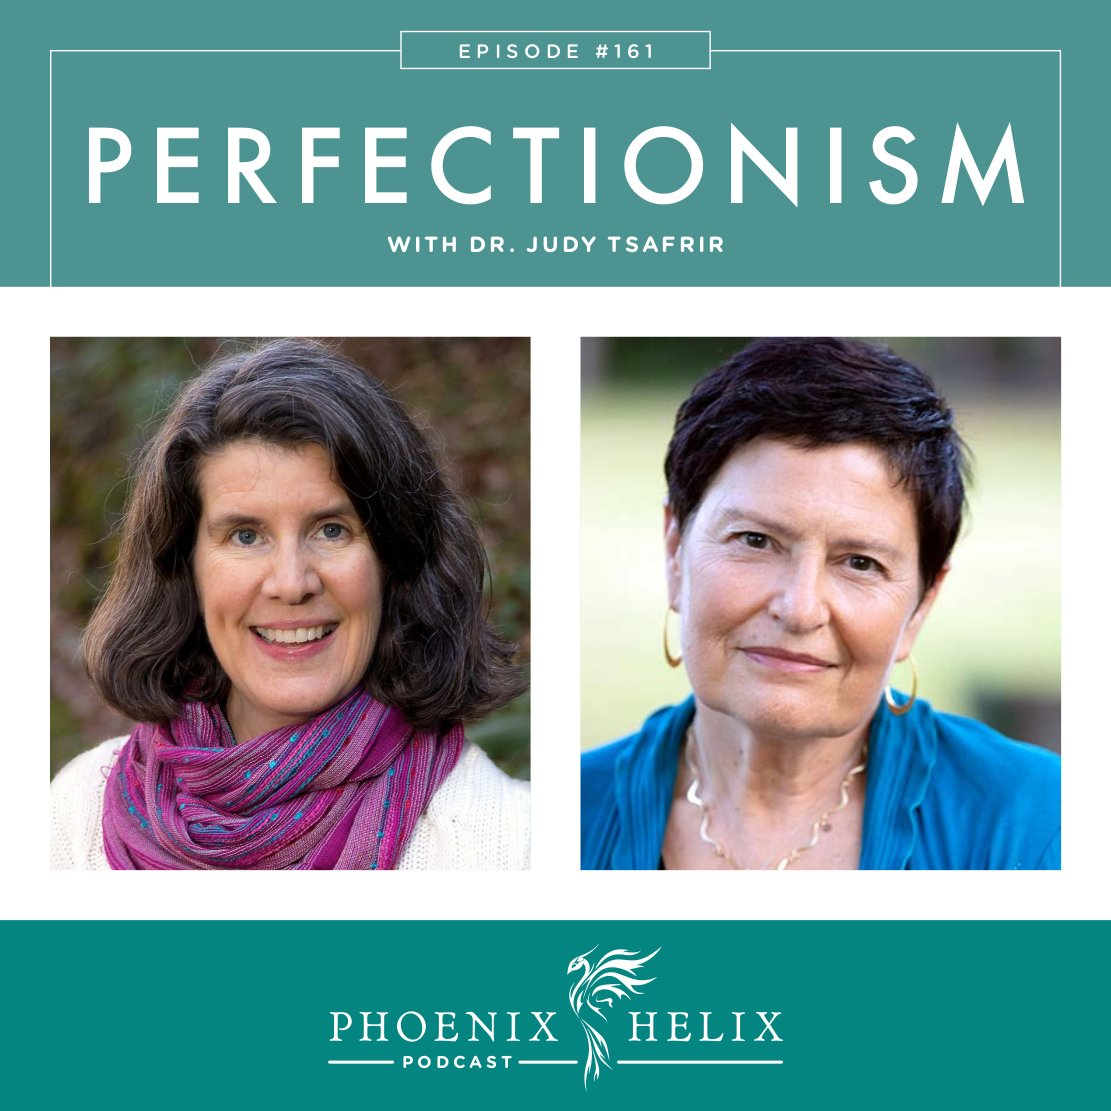 Perfectionism with Dr. Judy Tsafrir | Phoenix Helix Podcast